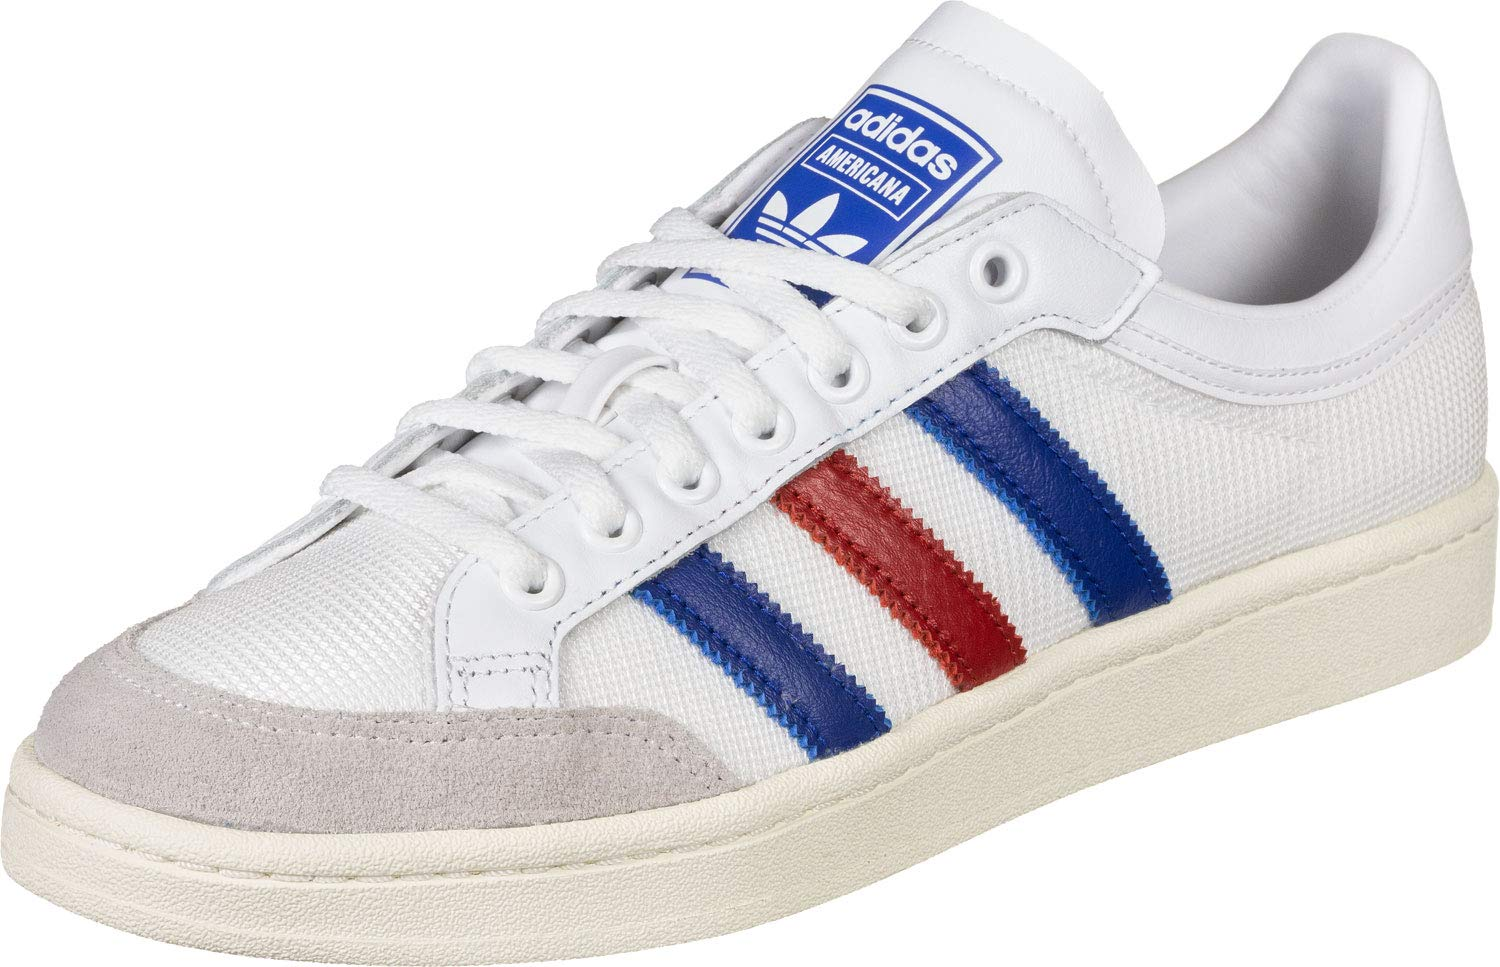 Chaussures Adidas Basse Americana: Amazon.fr: Sports et Loisirs